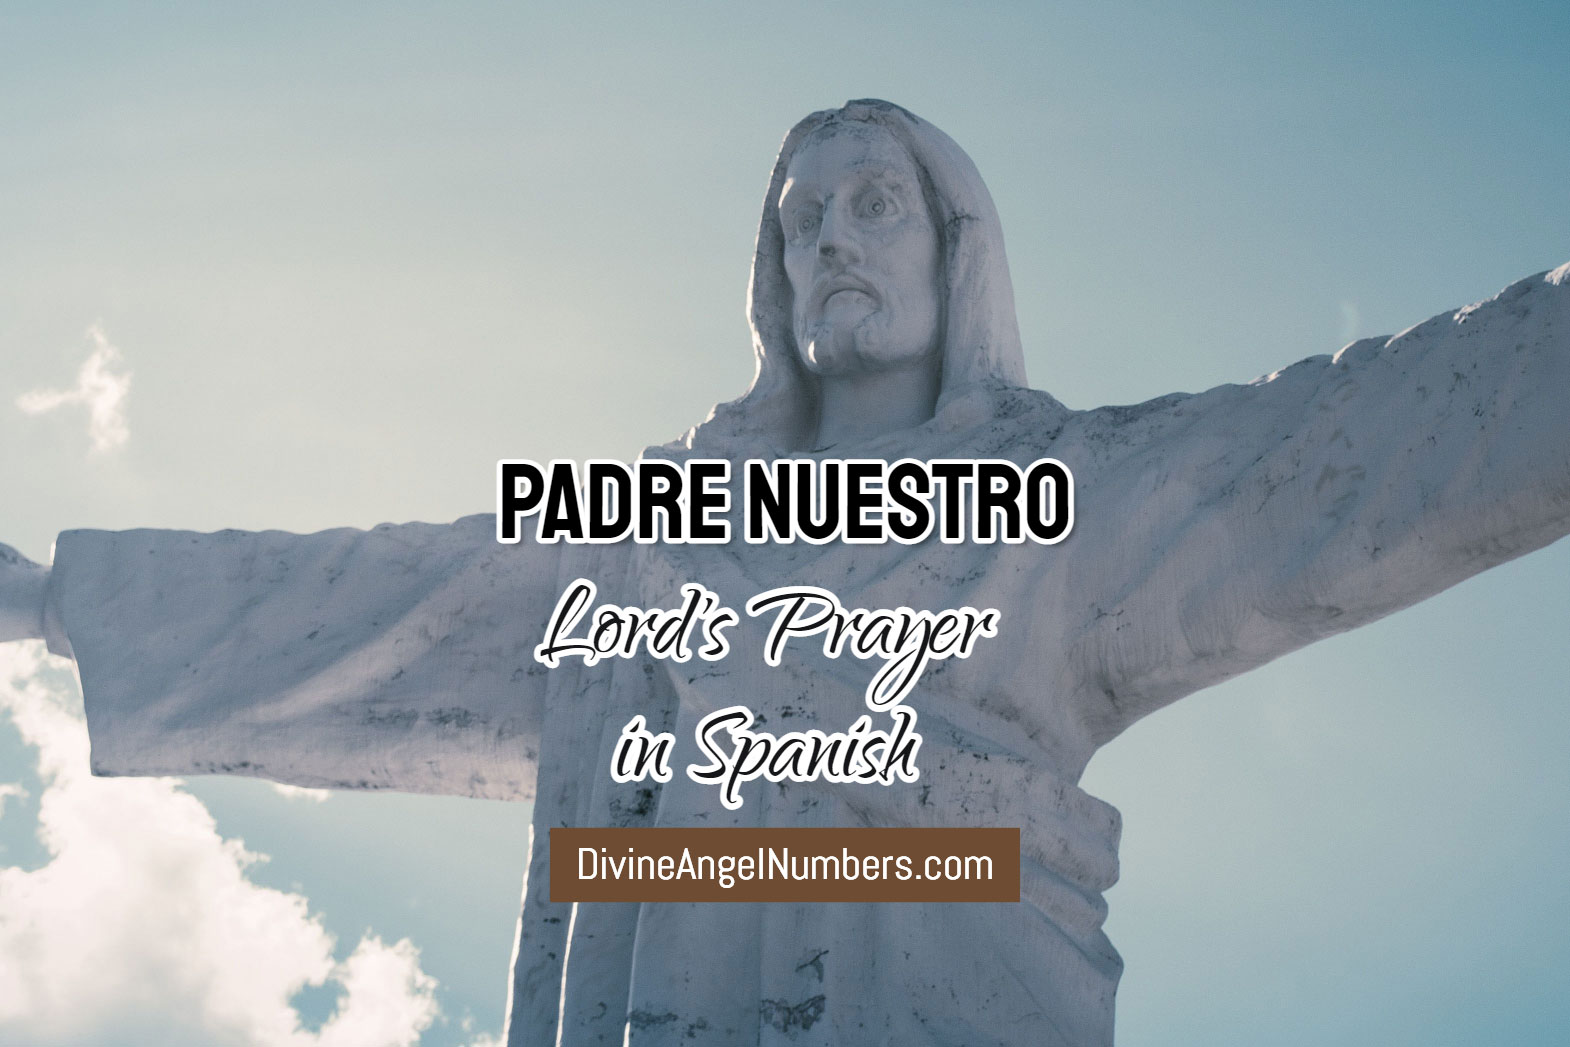 Padre Nuestro: Our Father (Lord's Prayer) in Spanish